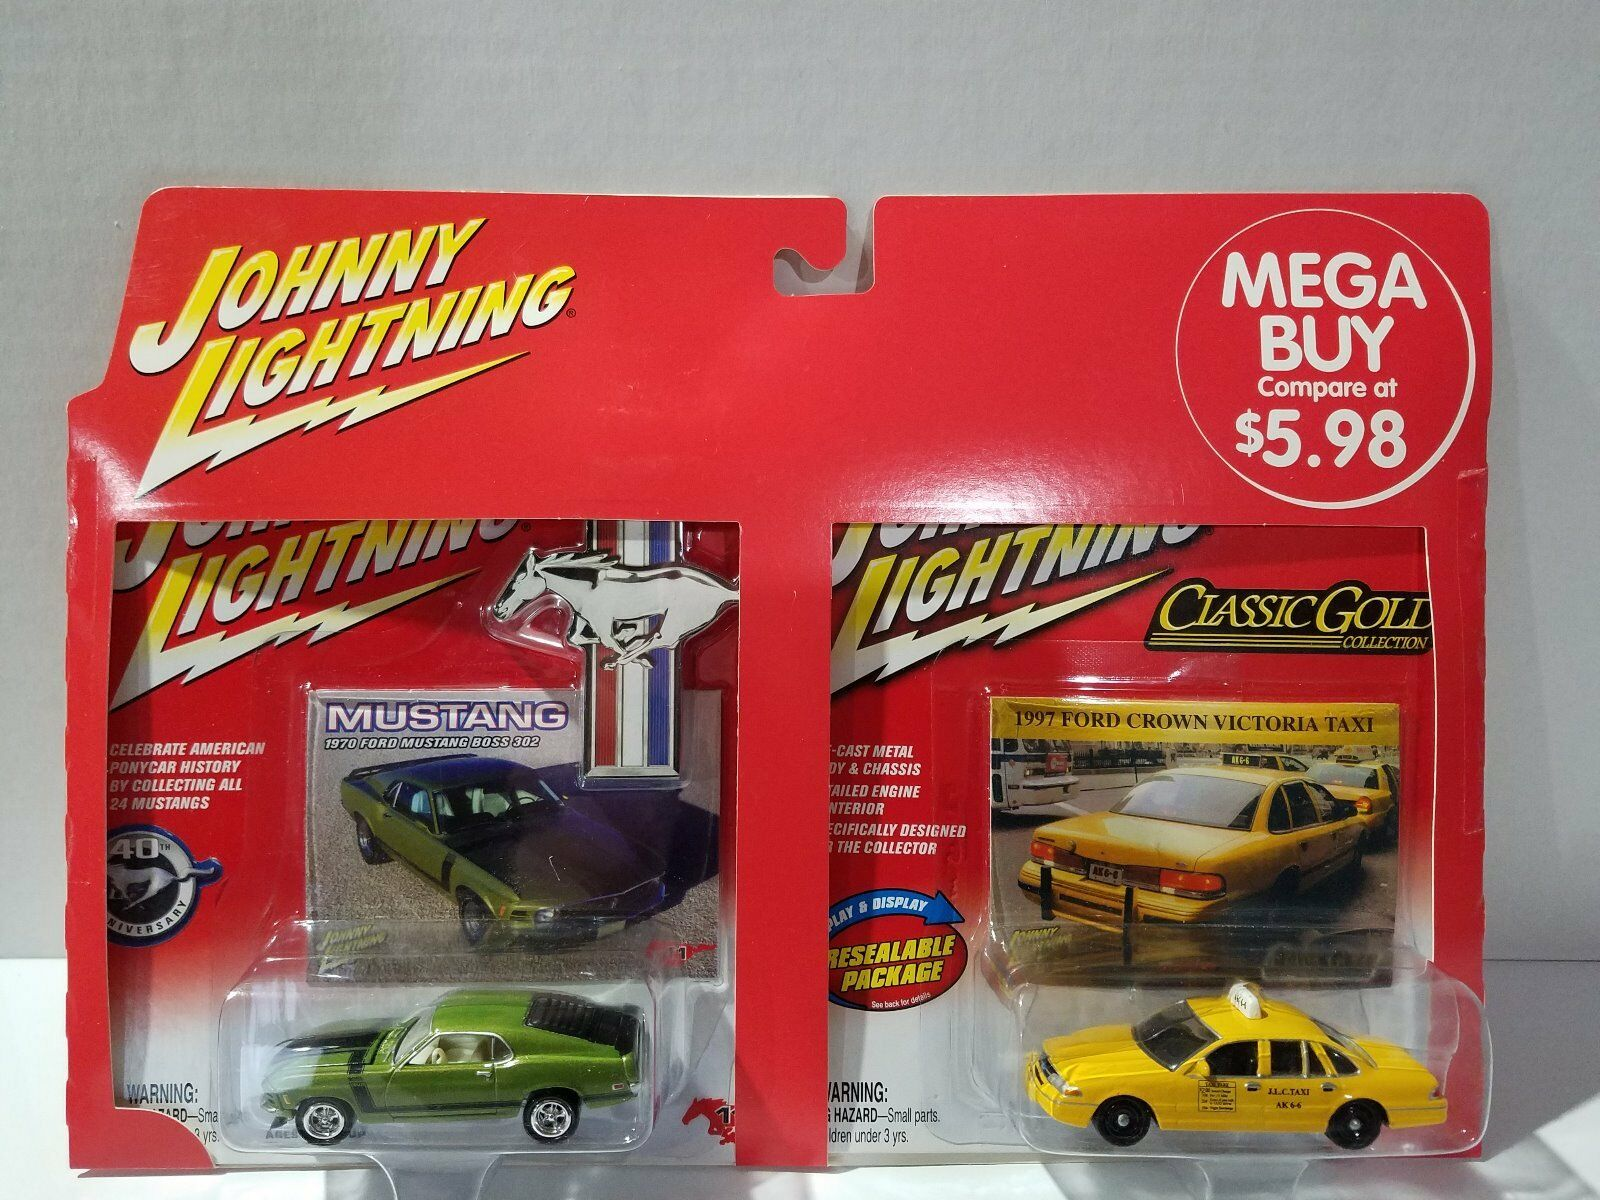 JOHNNY LIGHTNING 2PK 1970 MUSTANG & 1997 CROWN VICTORIA TAXI CLASSIC gold